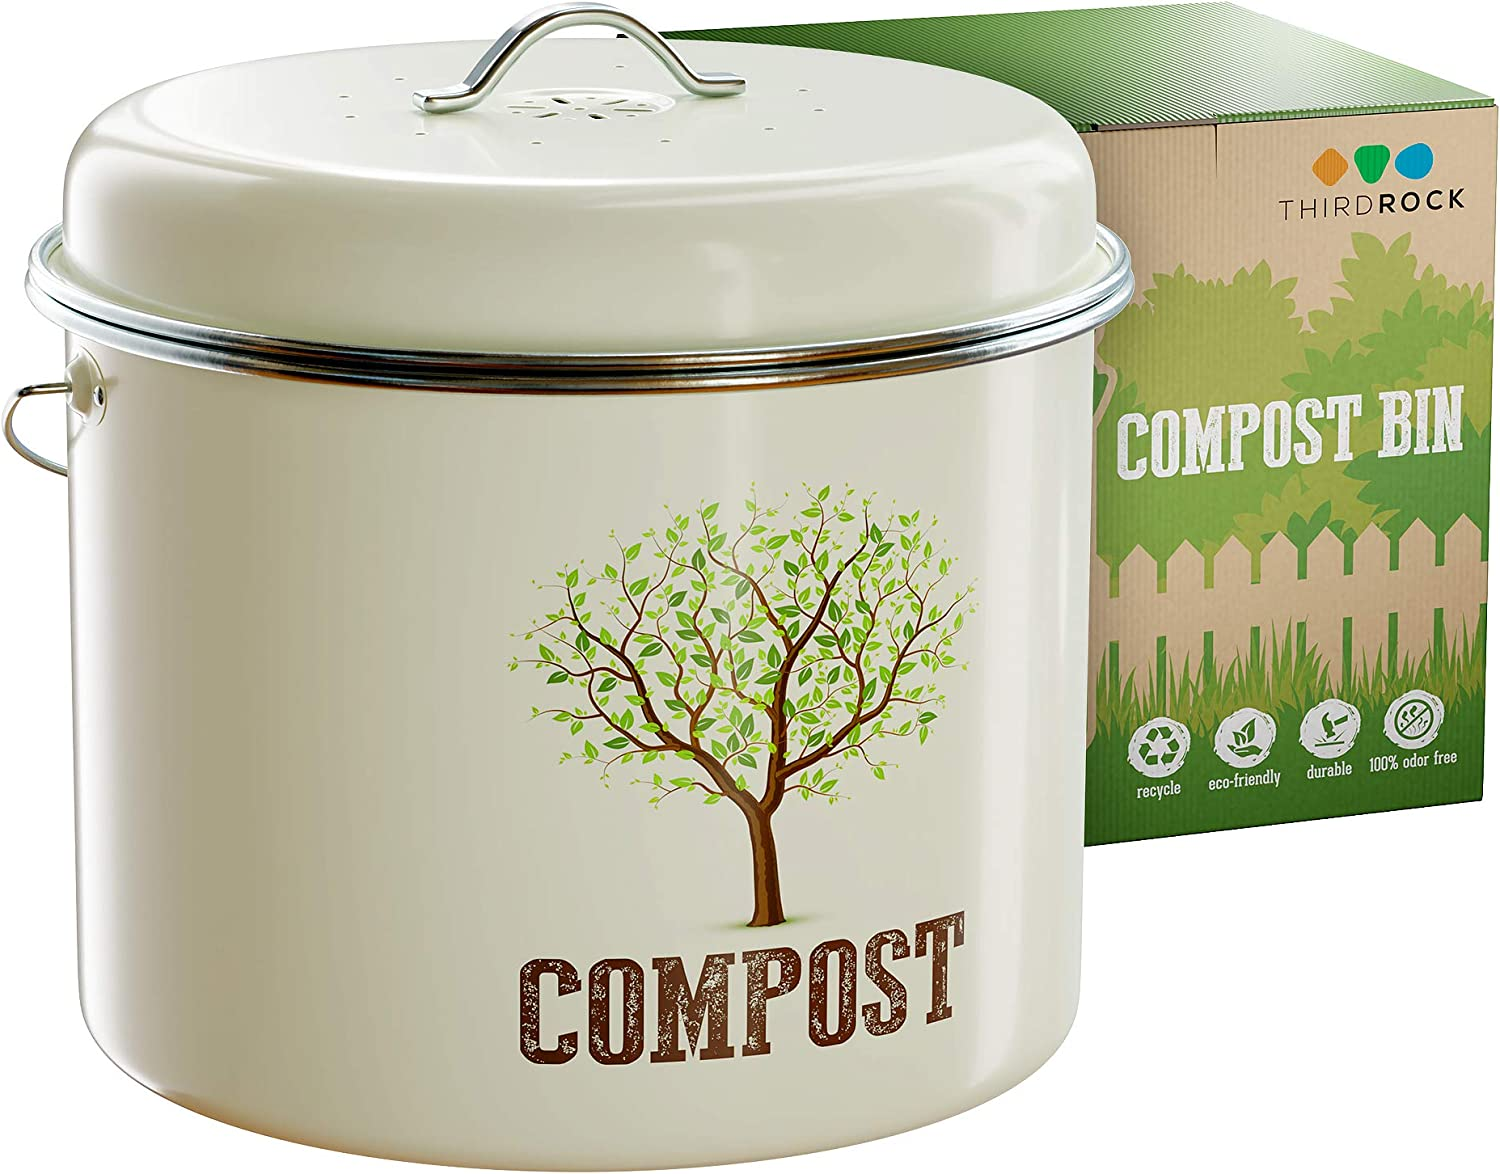 Third Rock Compost Bin for Kitchen Counter - 1 GALLON 3.8 LITER | Premium Dual Layer Powder Coated Carbon Steel Compost Bin Countertop Bucket | Includes Charcoal Filter for Kitchen Compost Bin